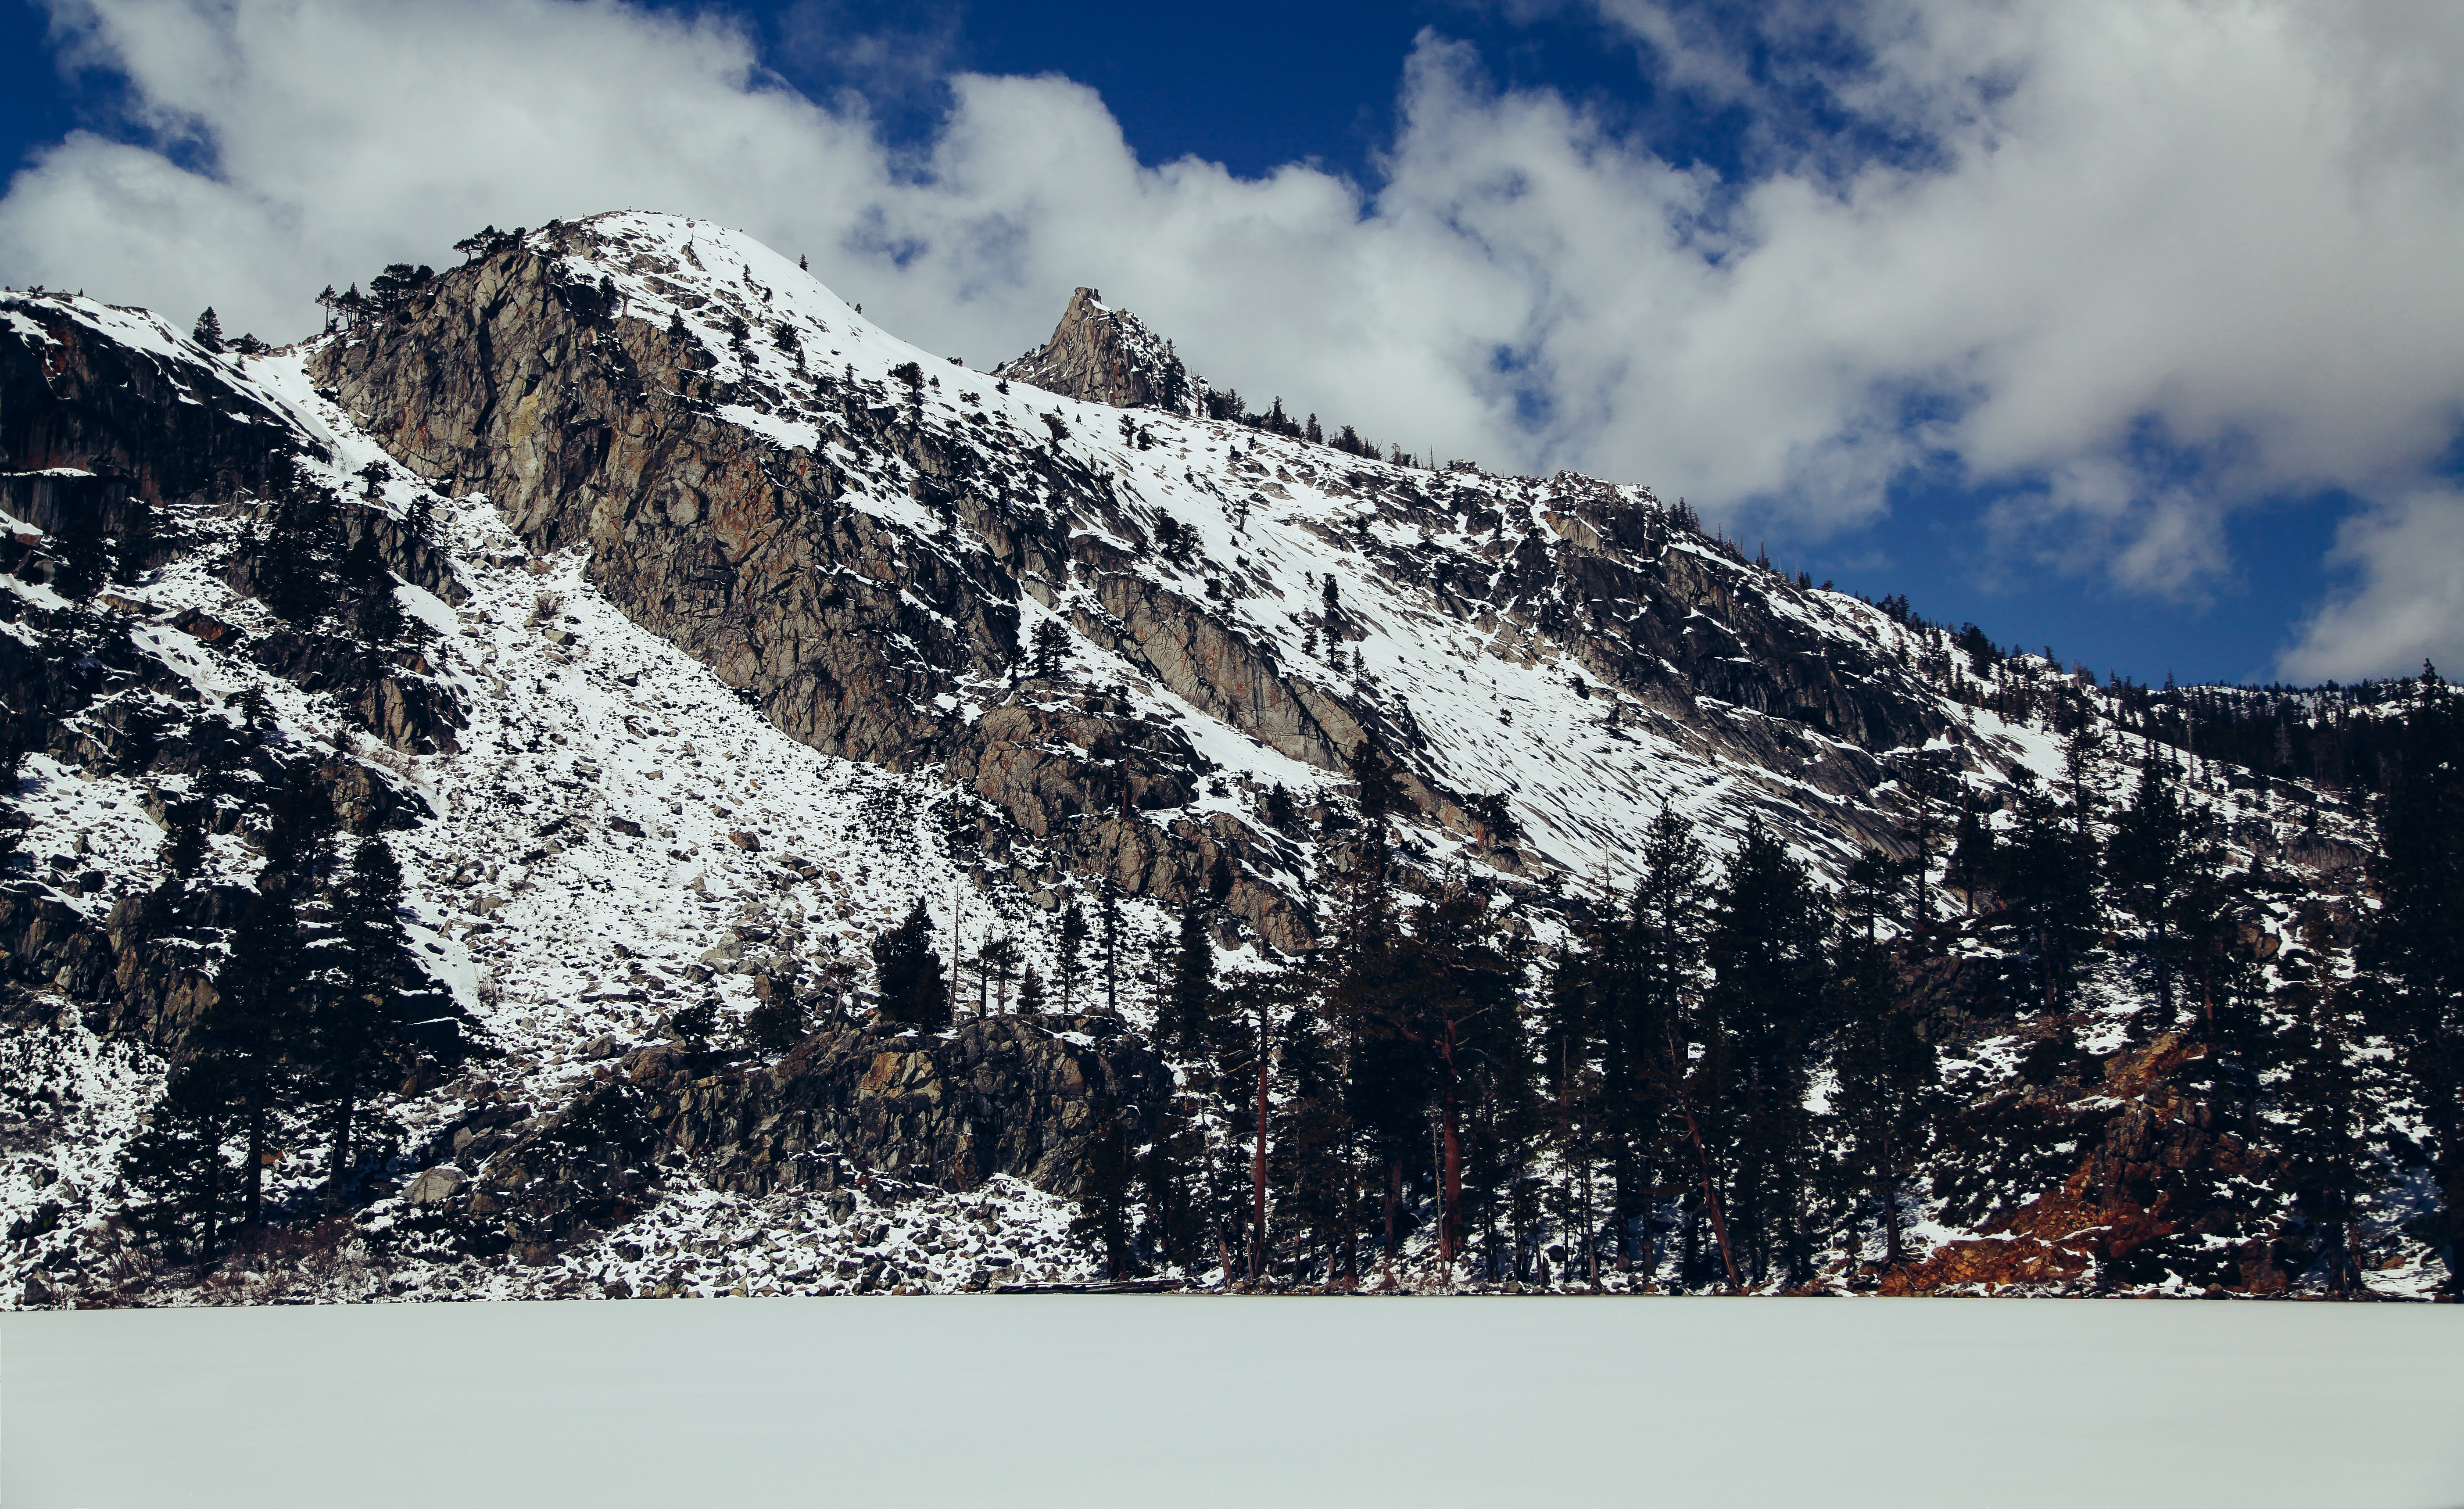 The milky surface of a lake next to a snow-covered mountain slope